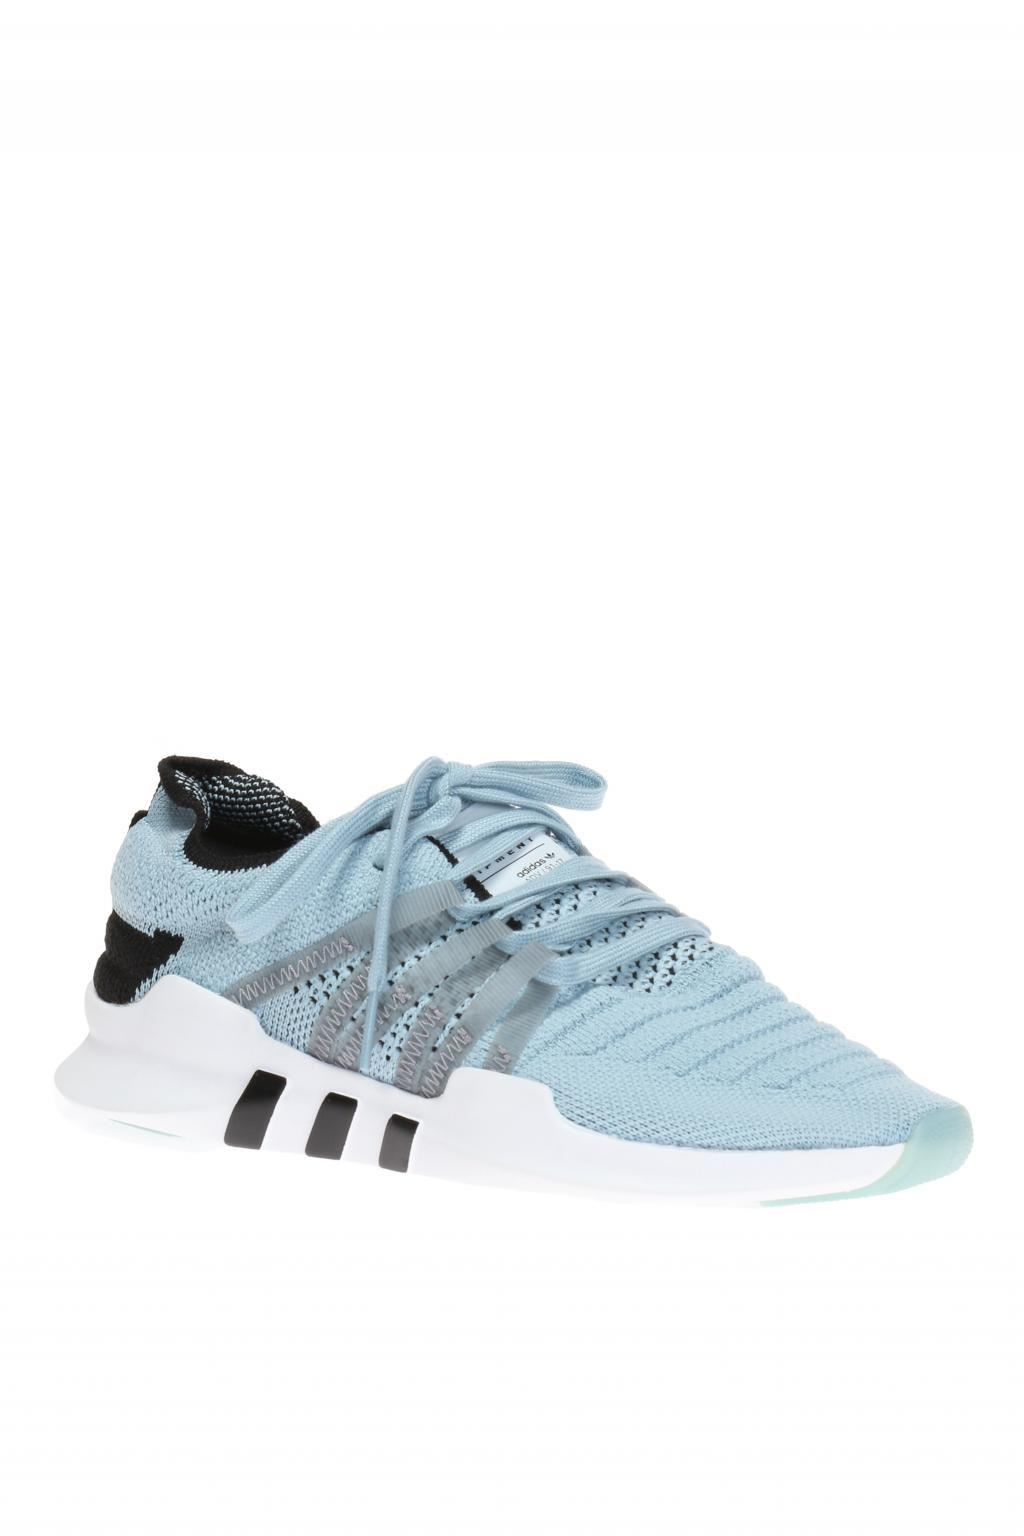 best website a5d0d 3ecdc Lyst - adidas eqt Racing Adv Sneakers in Blue